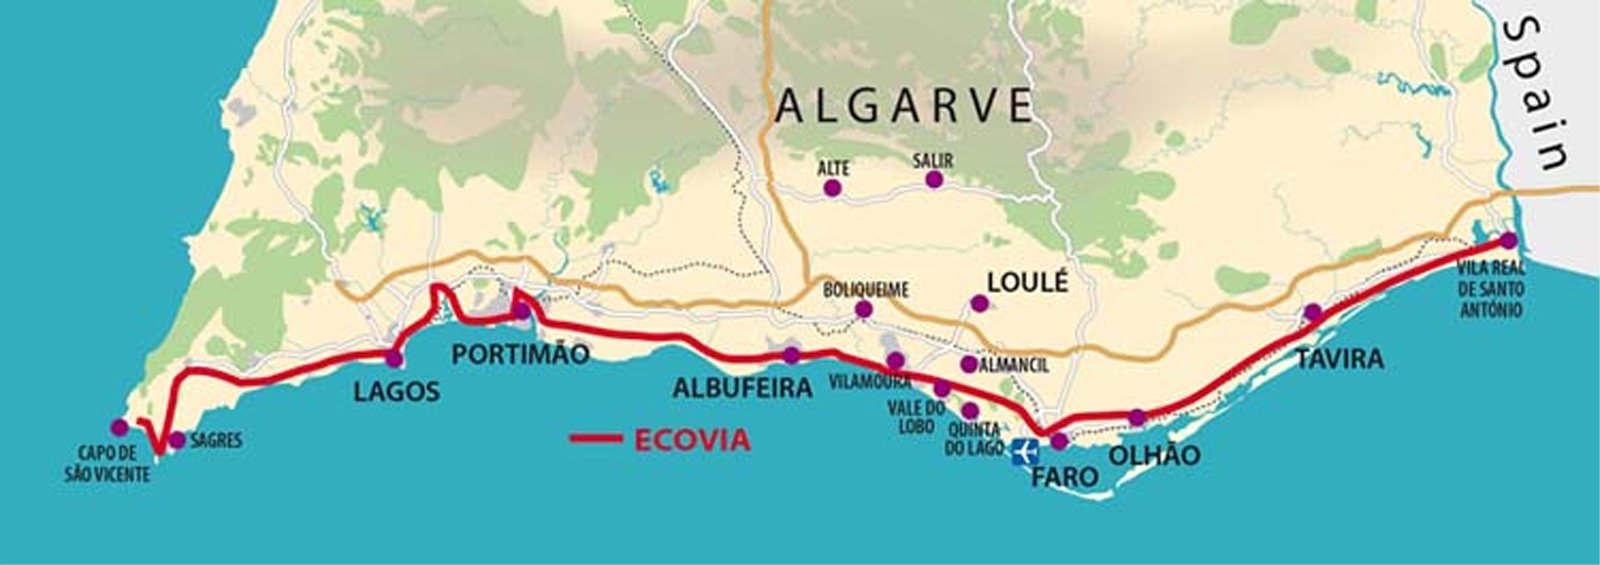 mapa do algarve completo Ecovia Litoral do Algarve   Algarve Portal mapa do algarve completo